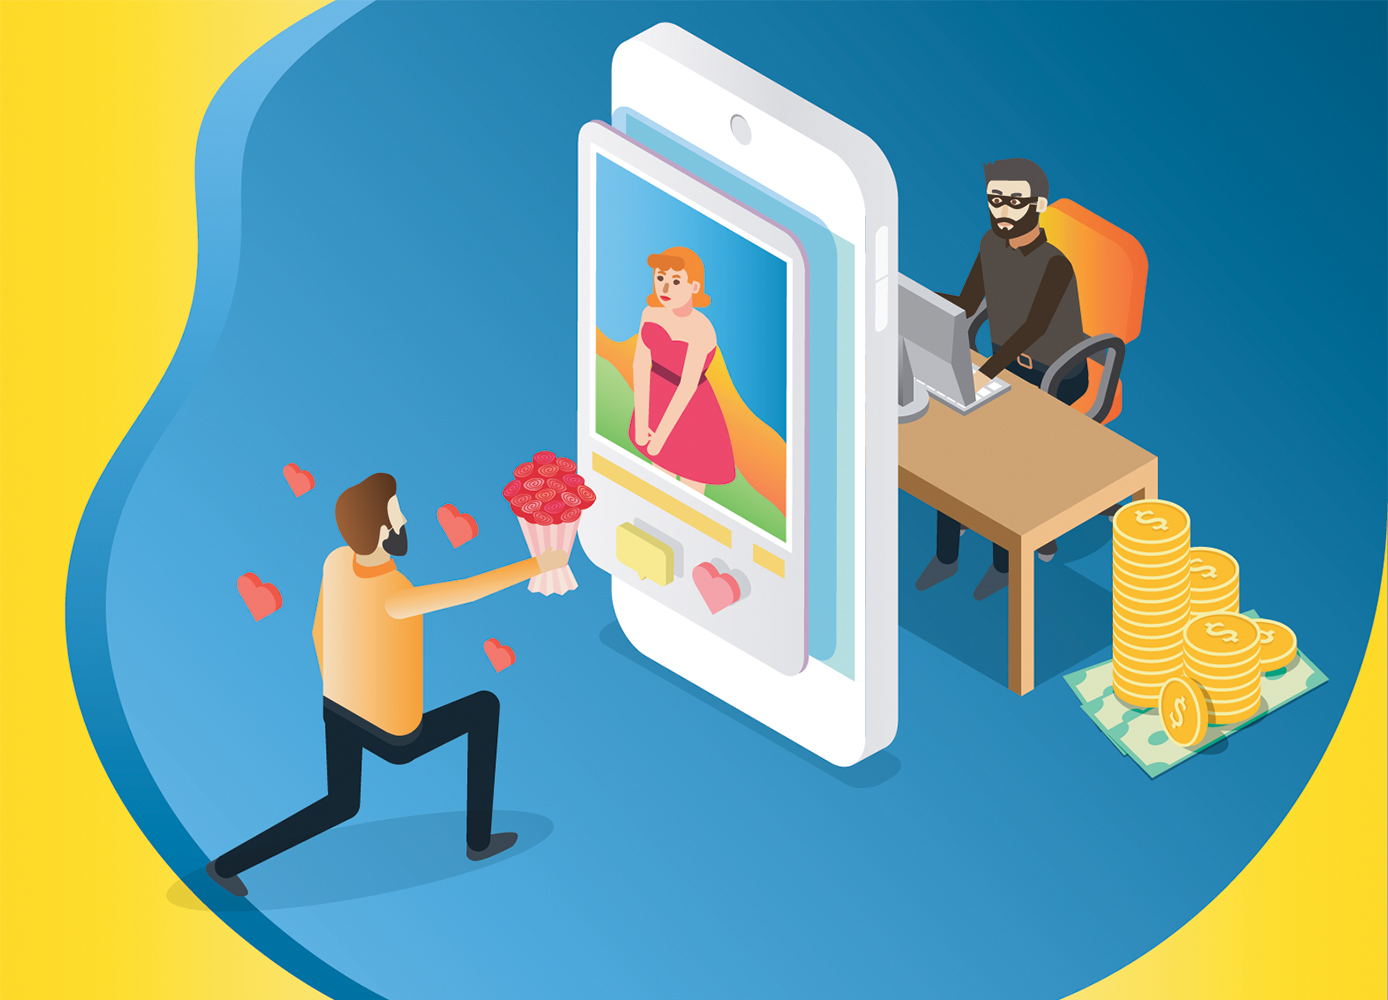 How to Avoid and Protect Yourself From Online Dating